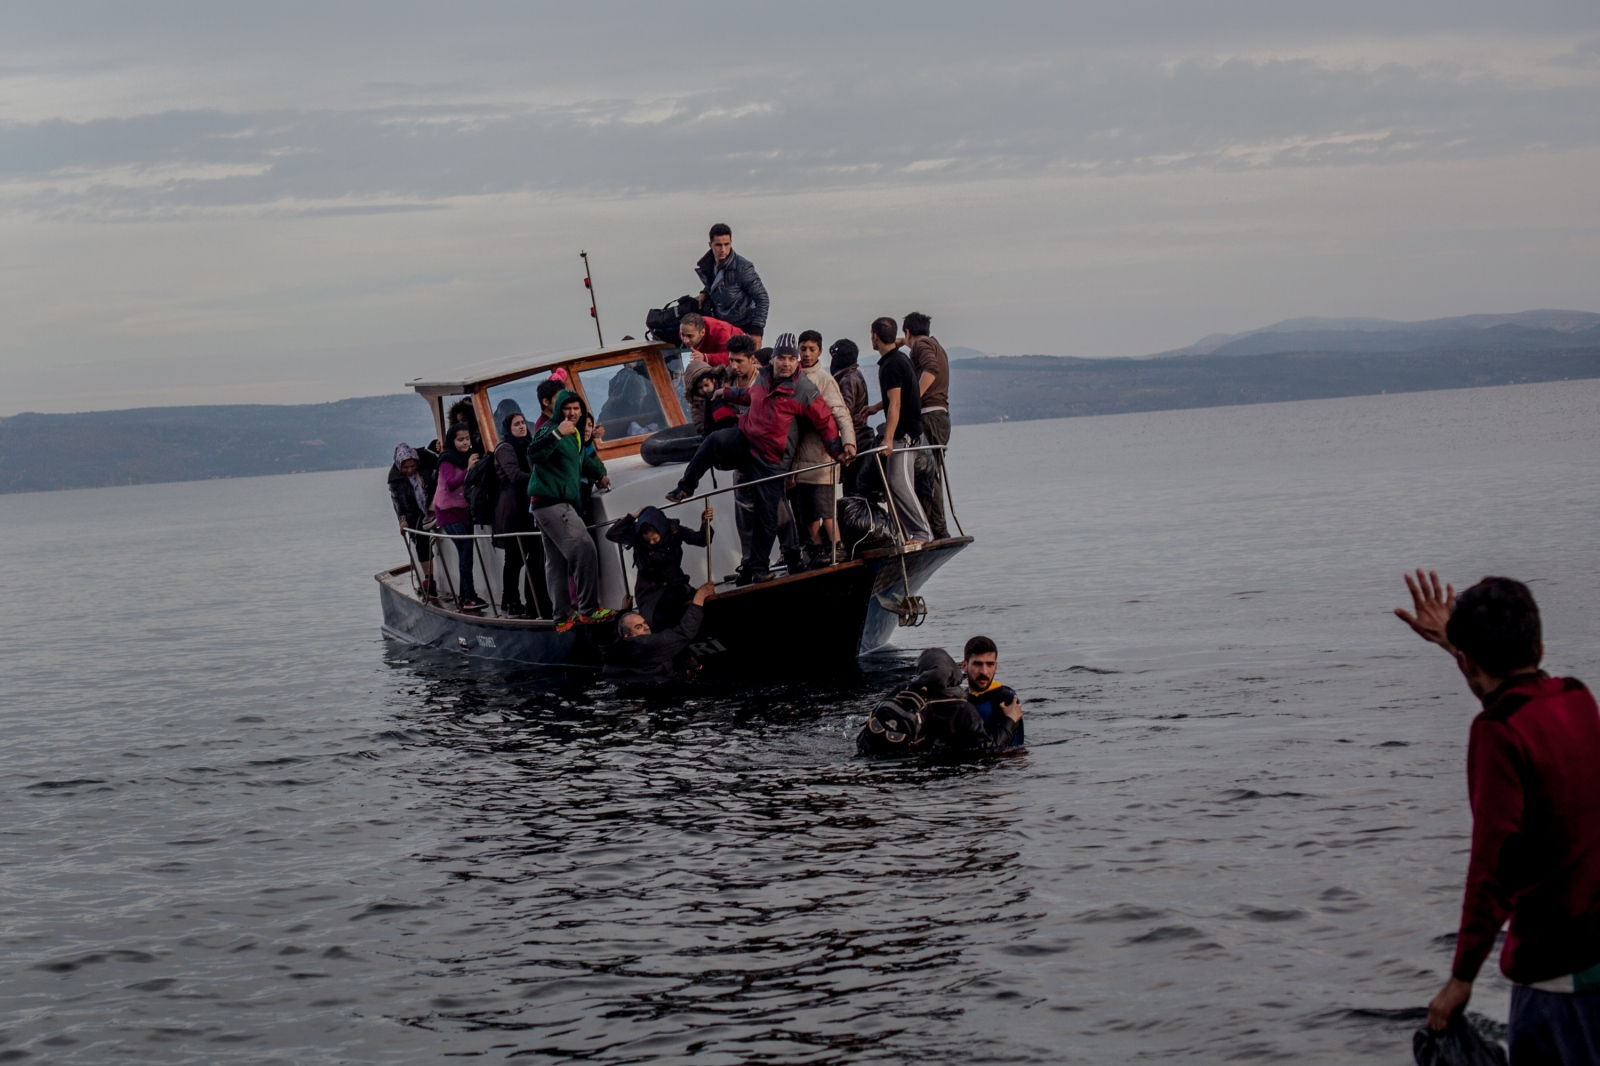 Volunteers attempt to assist a small wooden boat, packed with refugees, to shore in Lesbos, Greece, on November 16, 2015. The boat cut its engine about 50 meters from the shore without a clear reason. After all of the refugees had alighted from the boat, the engine was restarted and began making its way back to Turkey. It was discovered that the Turkish smuggler remained hidden on board to save himself for the return back to Turkey.